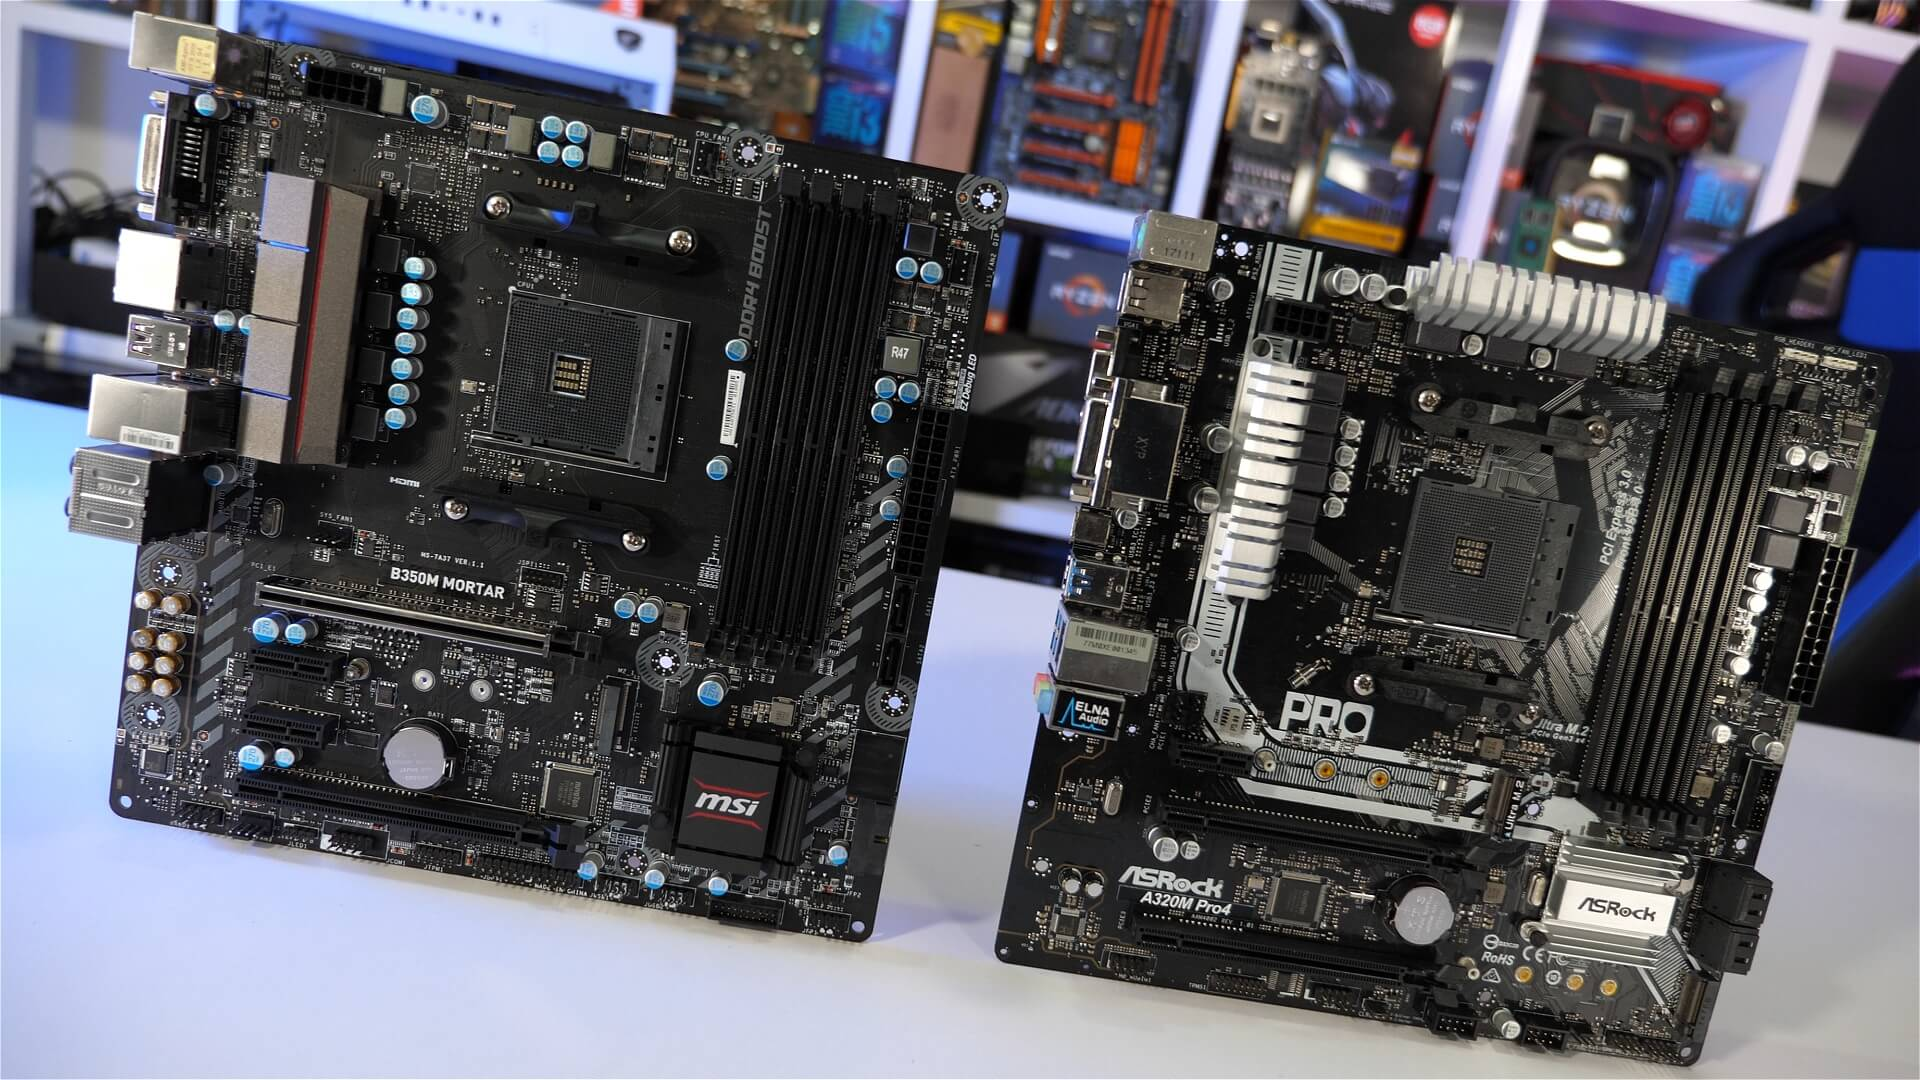 Dont Bother With A320 Motherboards Go For Amds B350 Instead This Article Is About The Electronic Component Physical That While Asrock A320m Lists Up To Ddr4 3200 Memory Support Via Overclocking I Wasnt Able Get Either Raven Ridge Apu Working At Speed